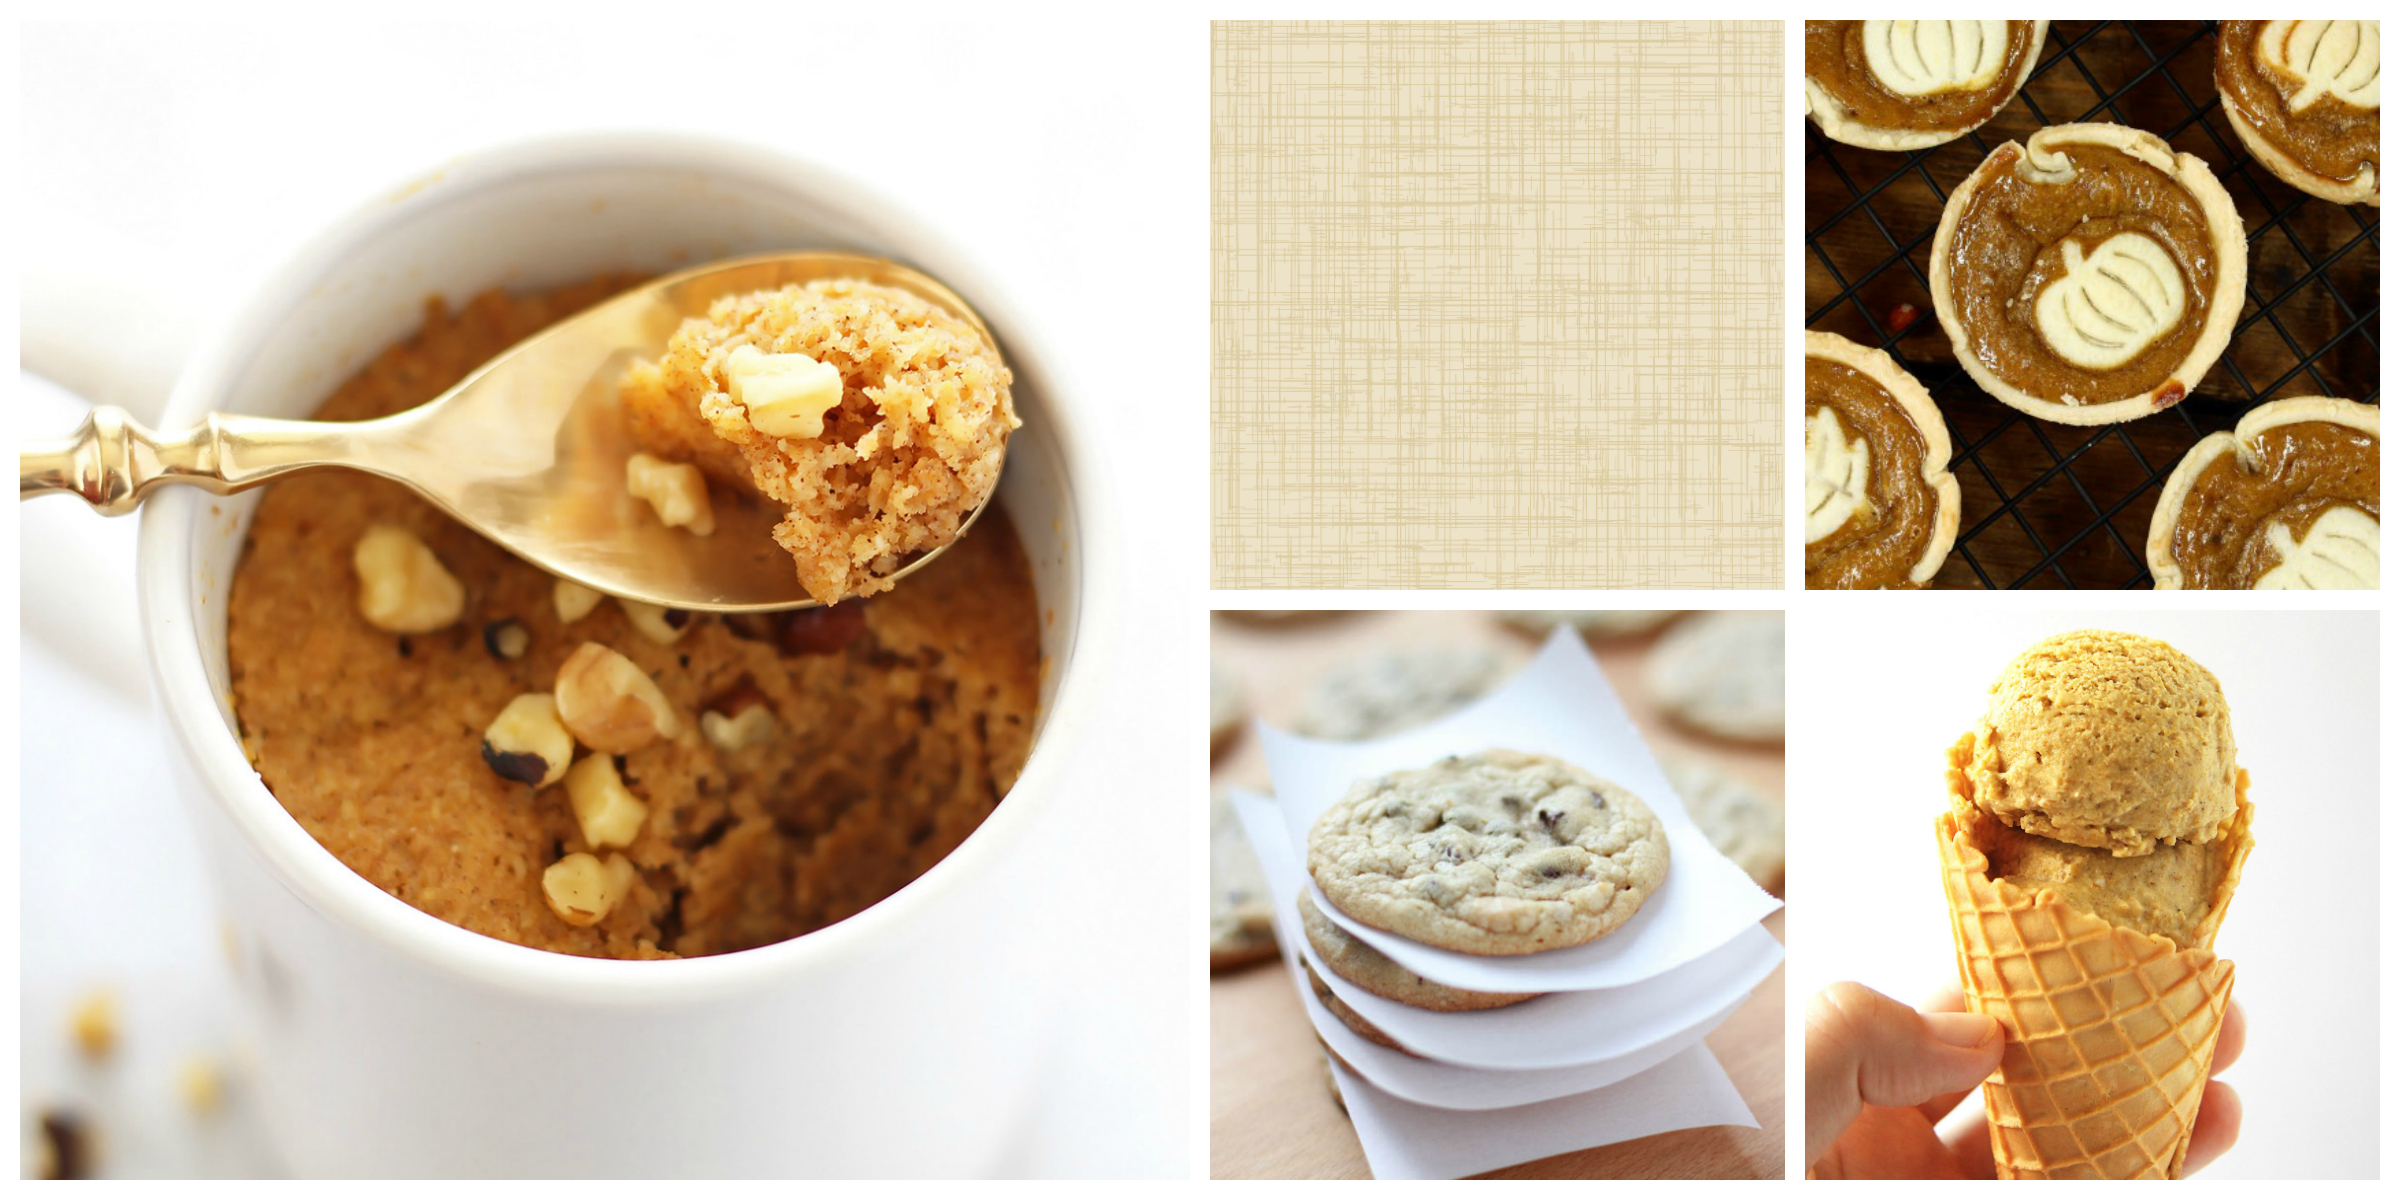 With fall just days away, I'm stockpiling canned pumpkin for all these Pumpkin Spice recipes!